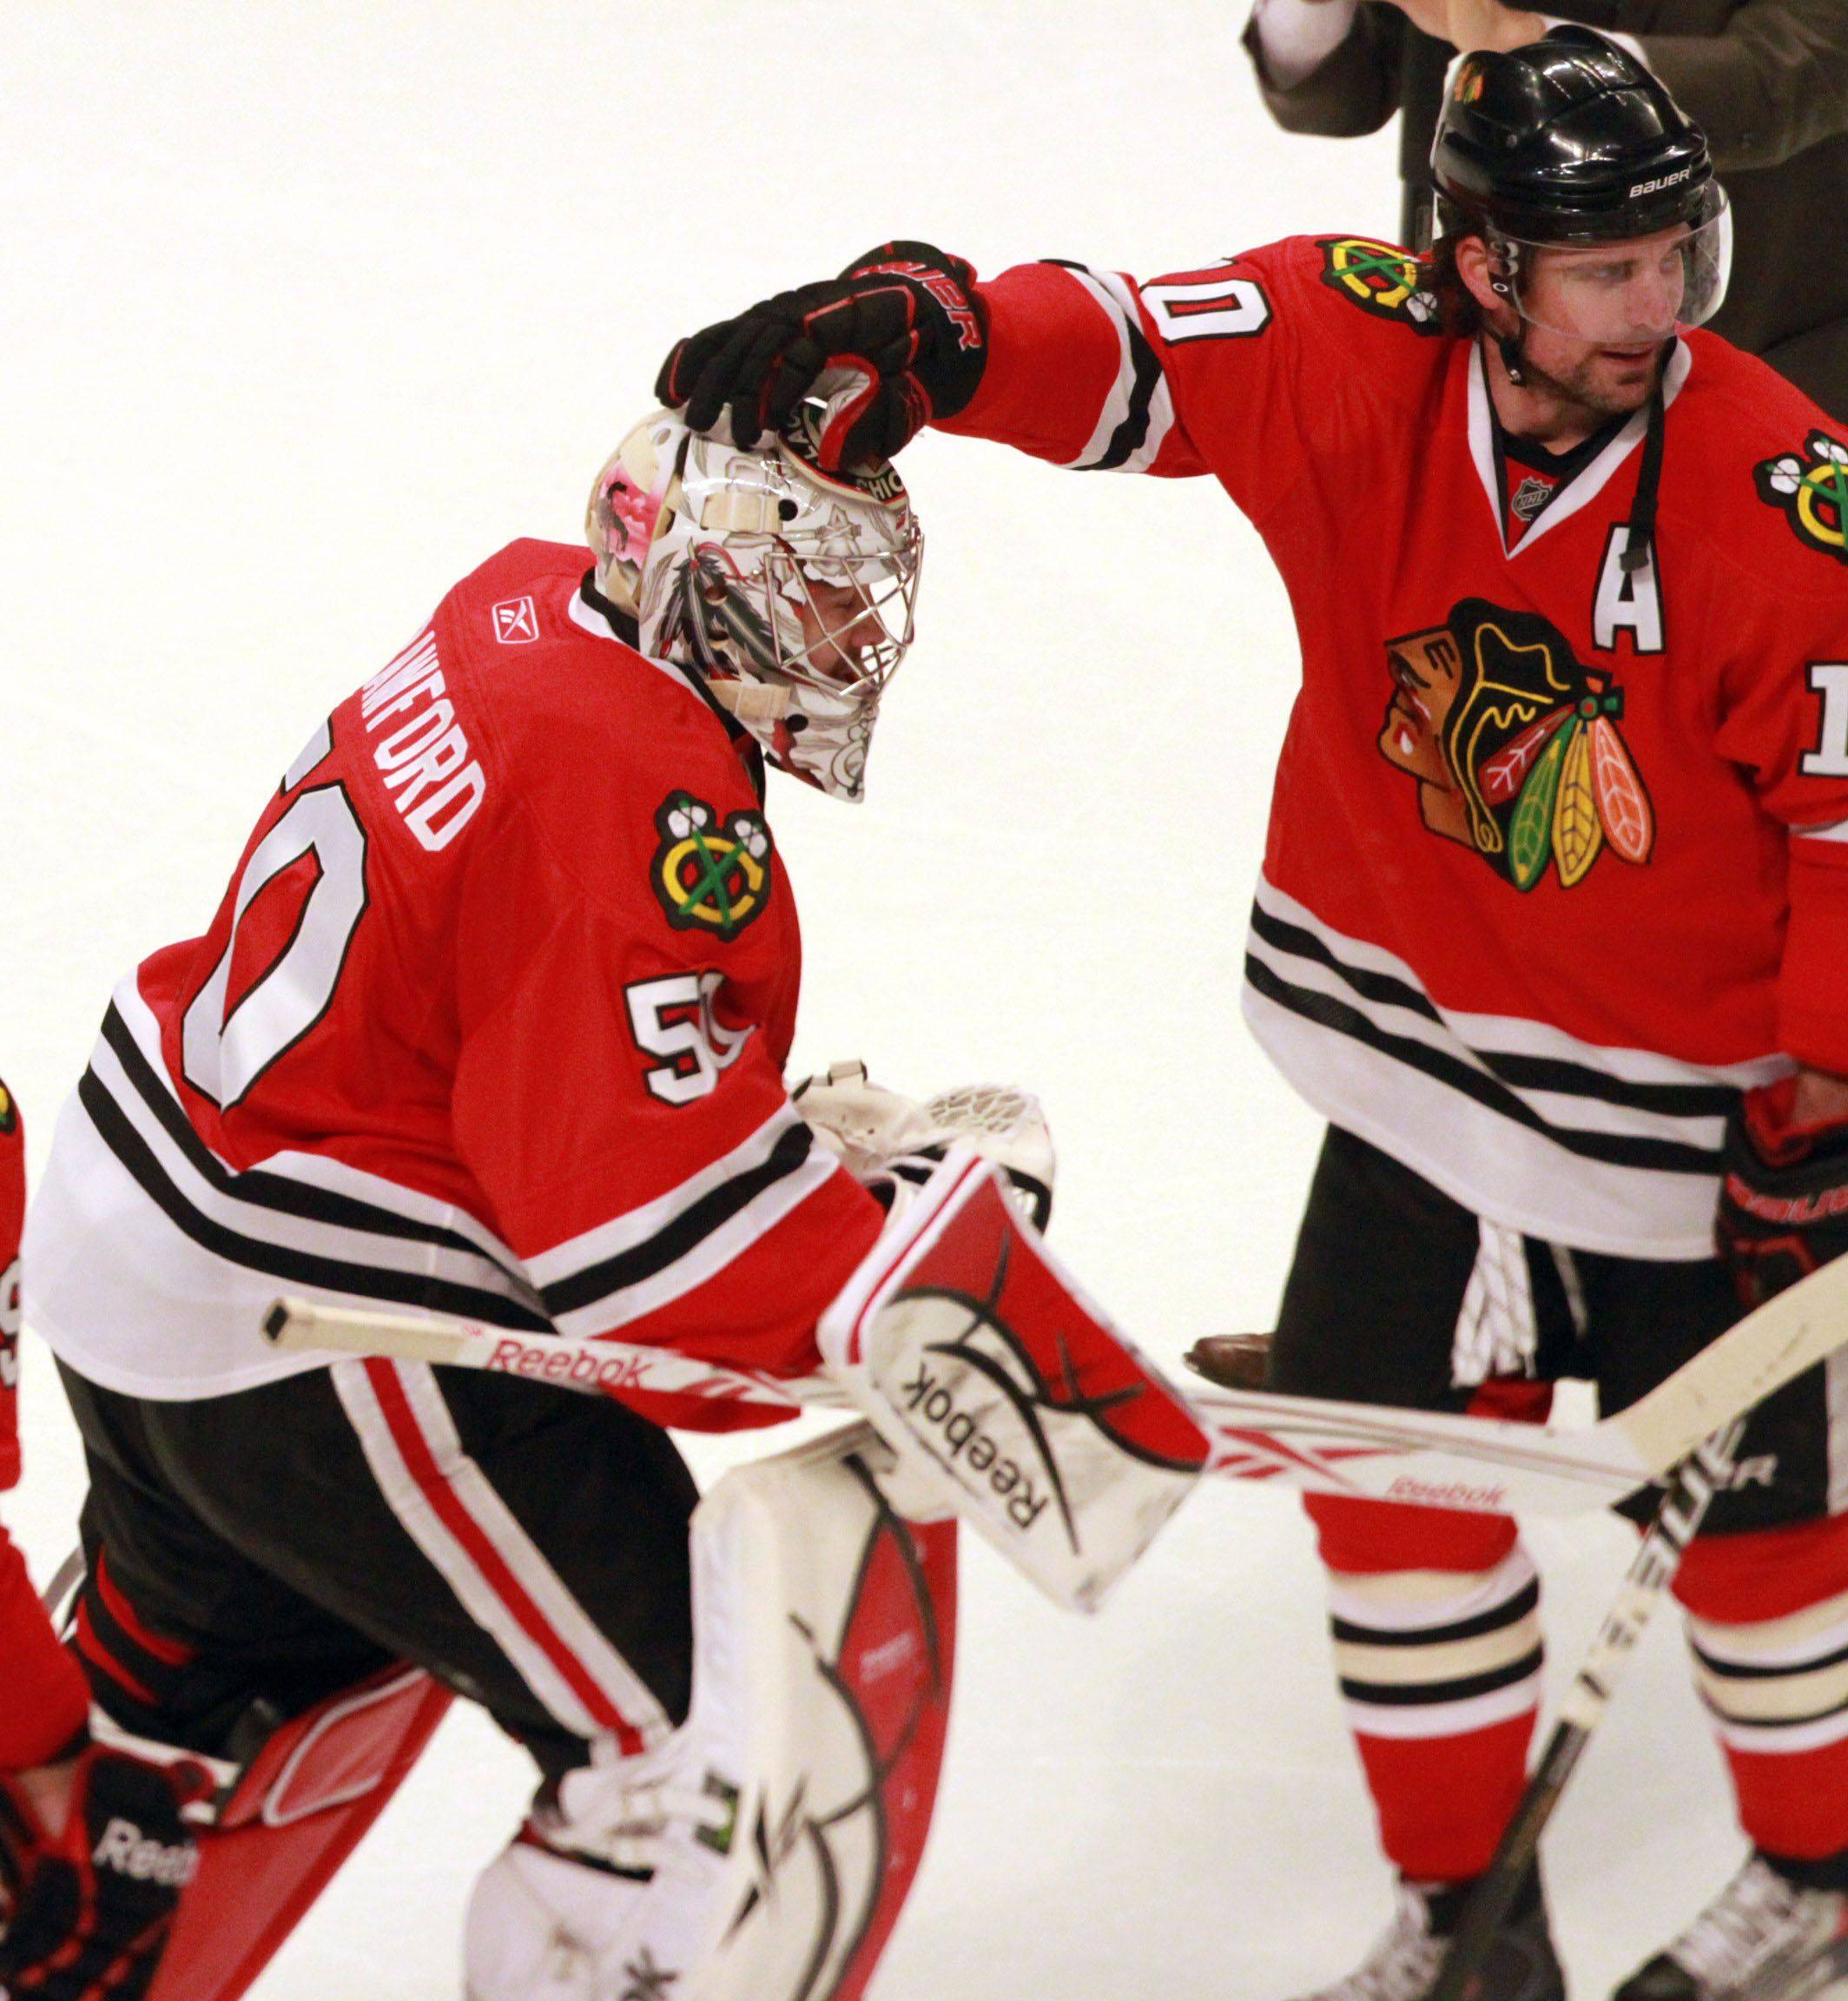 Chicago Blackhawks goalie Corey Crawford gets a hand from Patrick Sharp after 4-3 win in overtime against the Vancouver Canucks in game 6 of the Stanley Cup quarterfinals at the United Center in Chicago on Sunday.